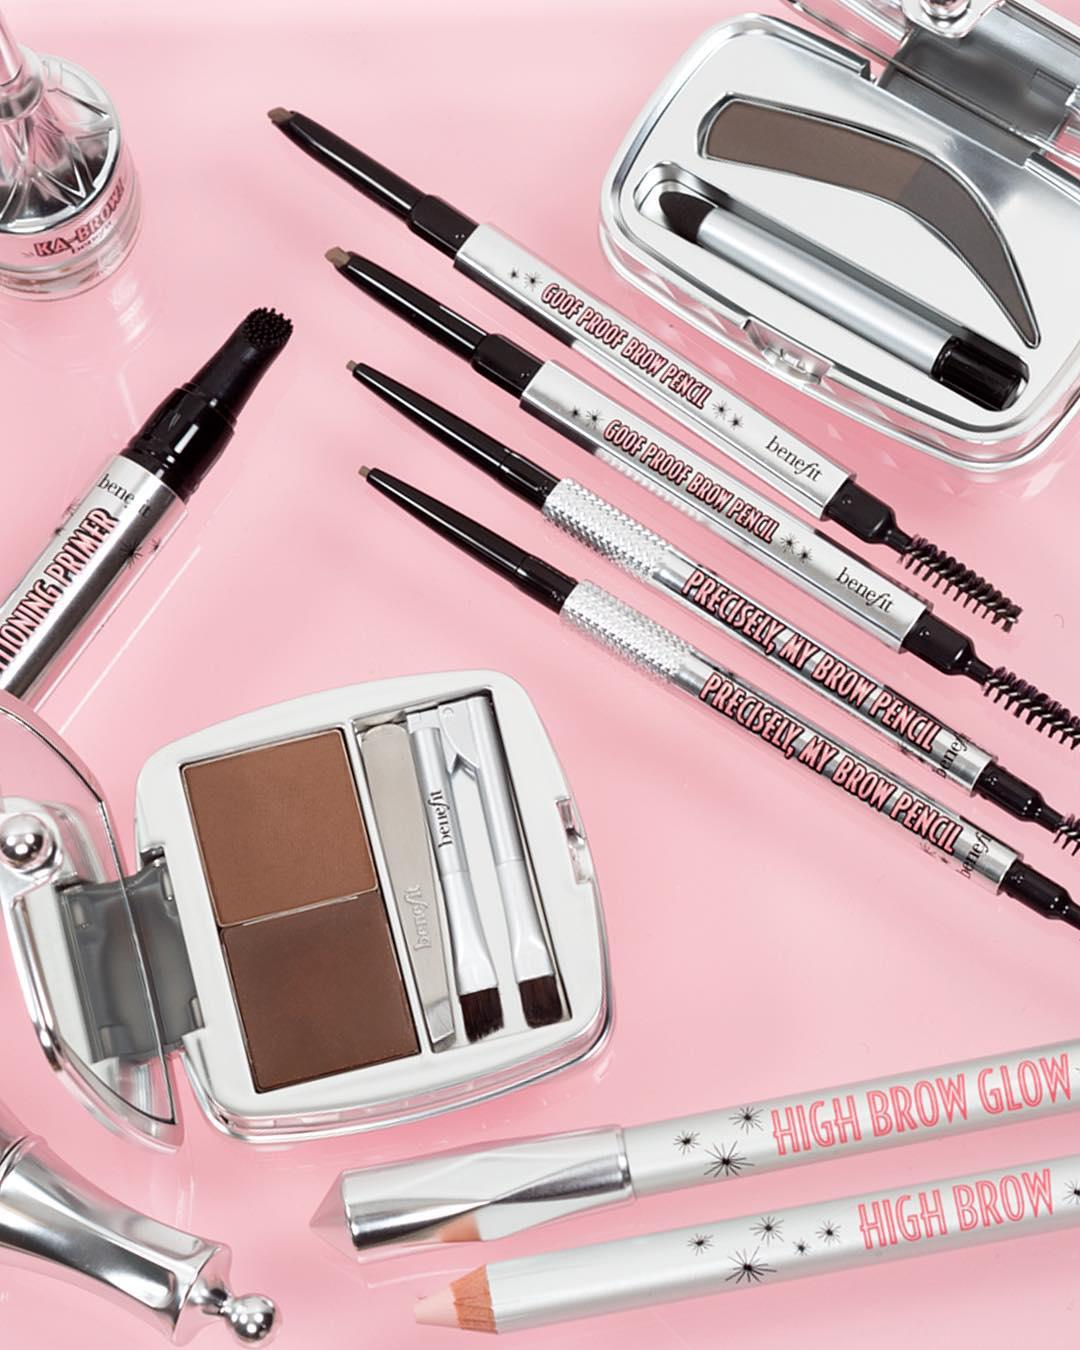 Benefit Cosmetics BrowBar Beauty Counter image 4